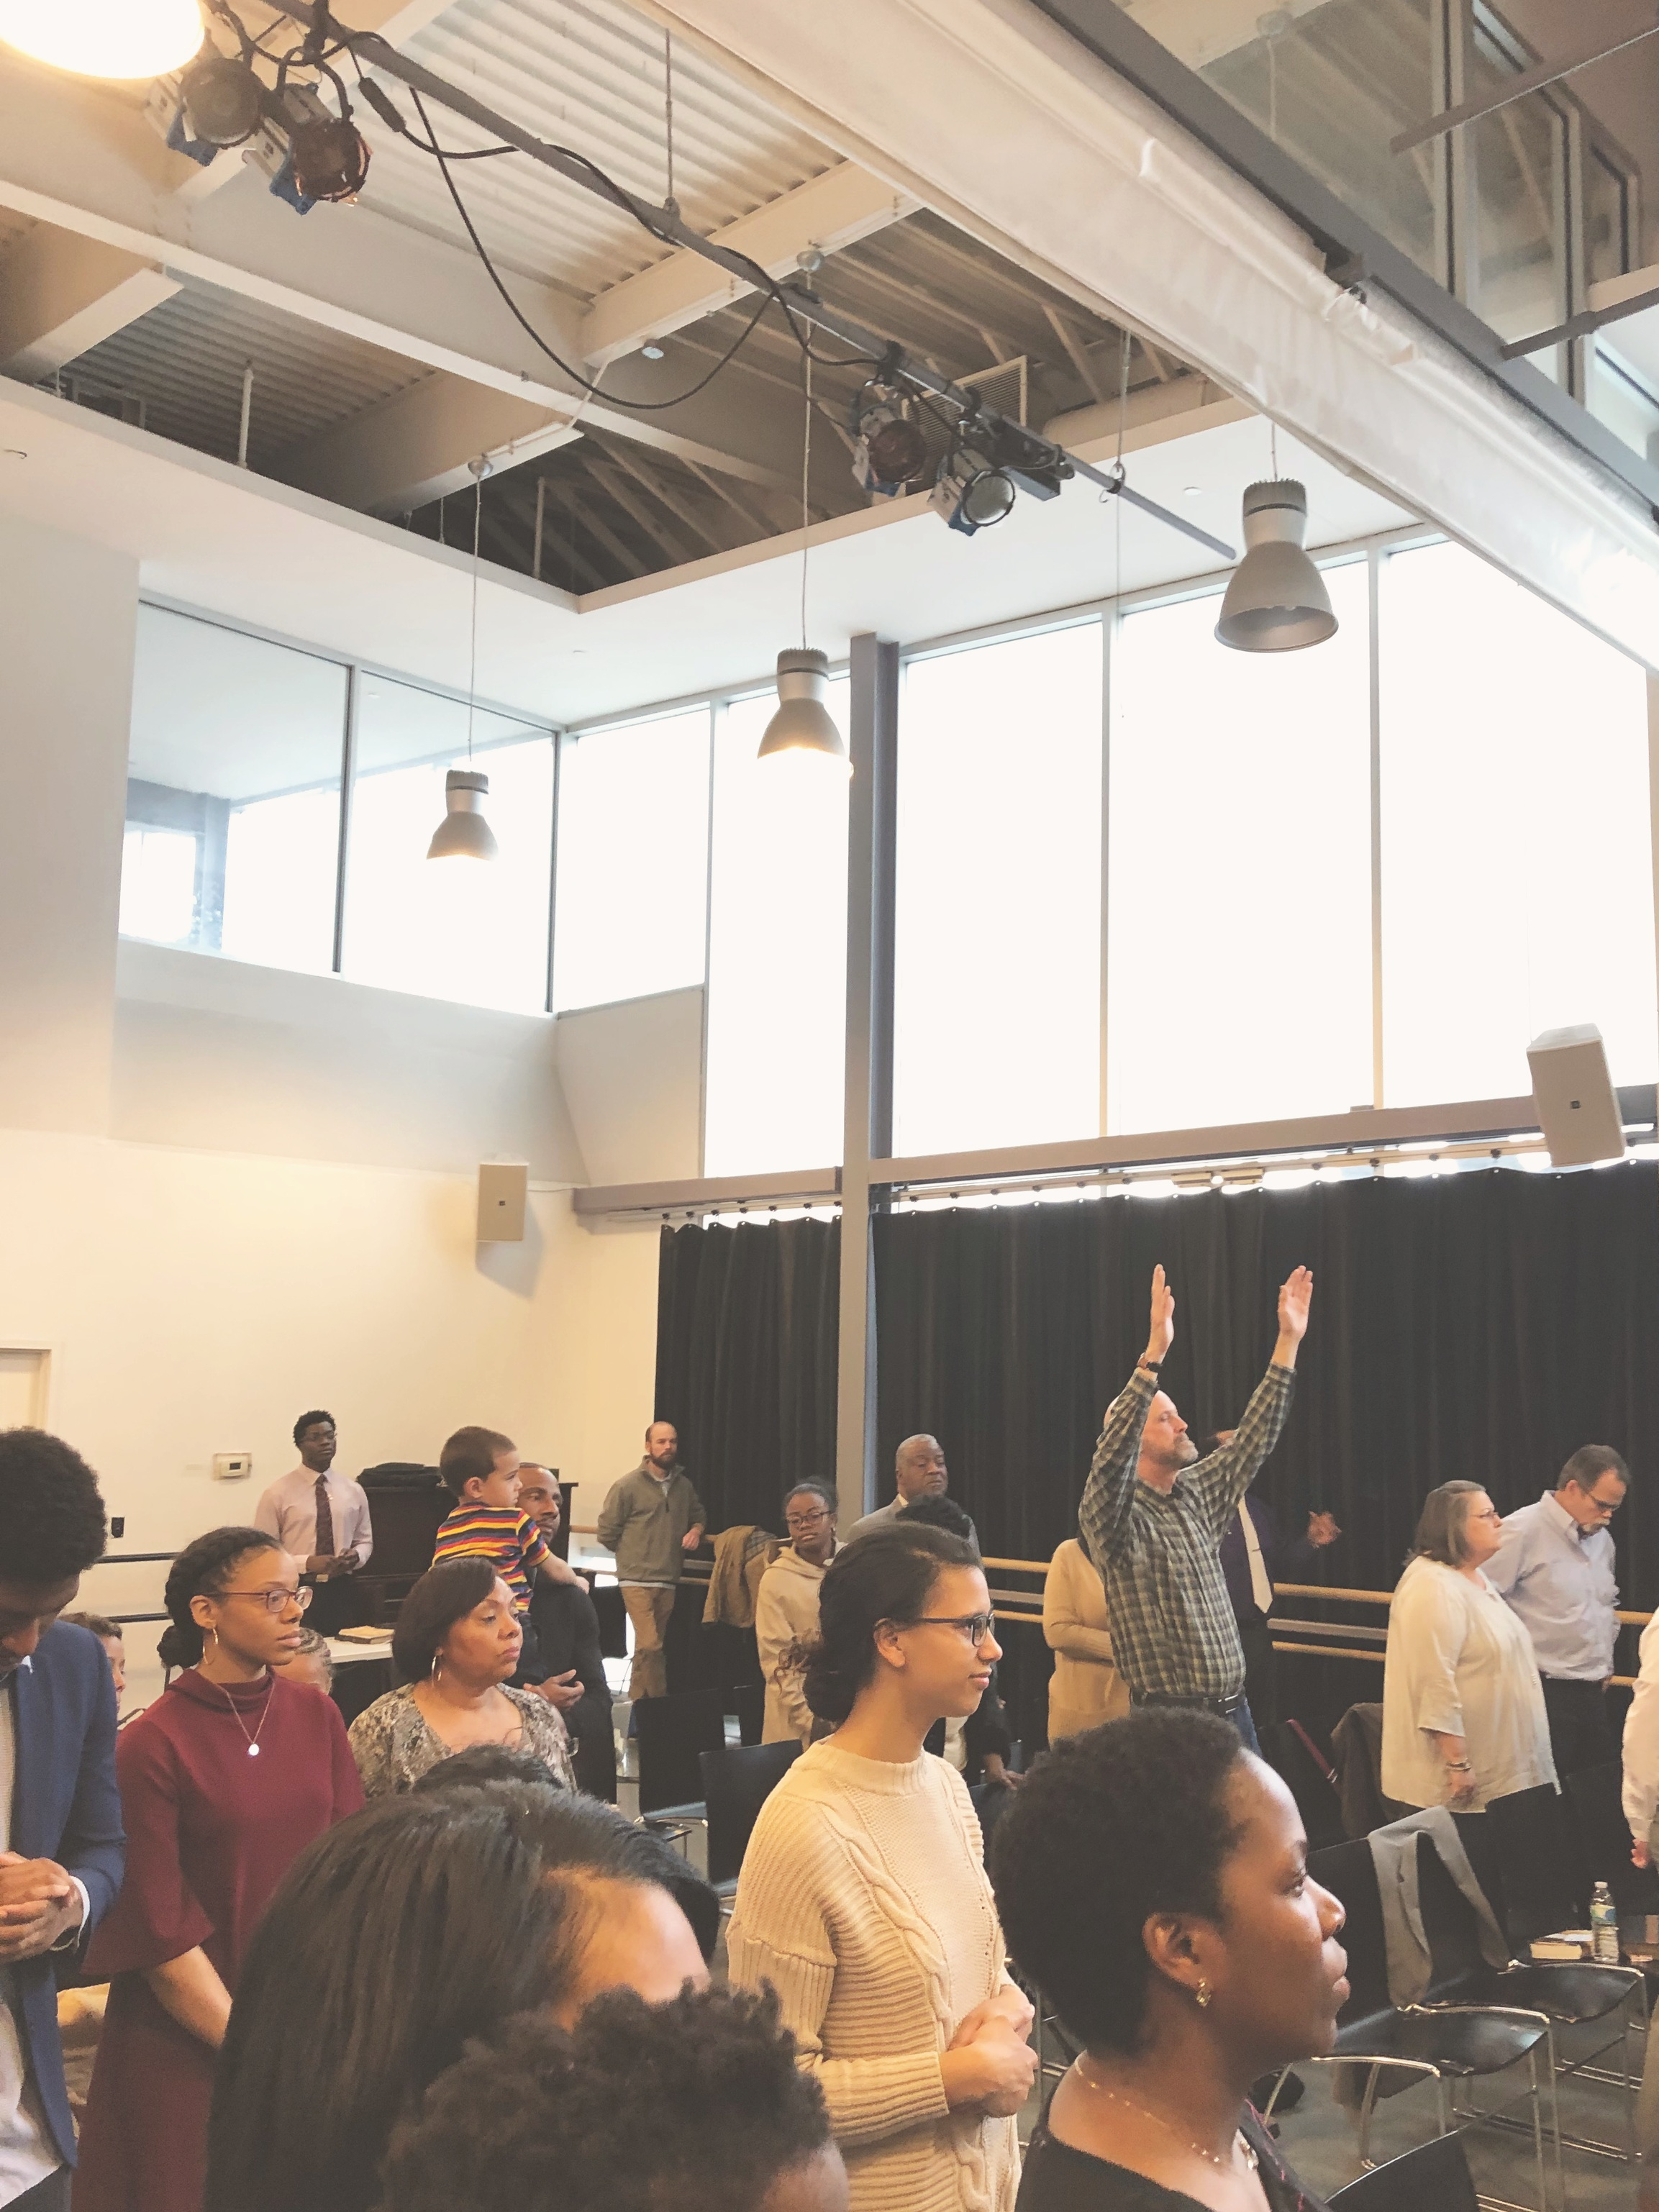 We meet every Sunday at 10:30 AM at the Dance Institute of Washington D.C - Sunday service is laid back and casual so come as you are. We also serve coffee, tea, and pastries before service.